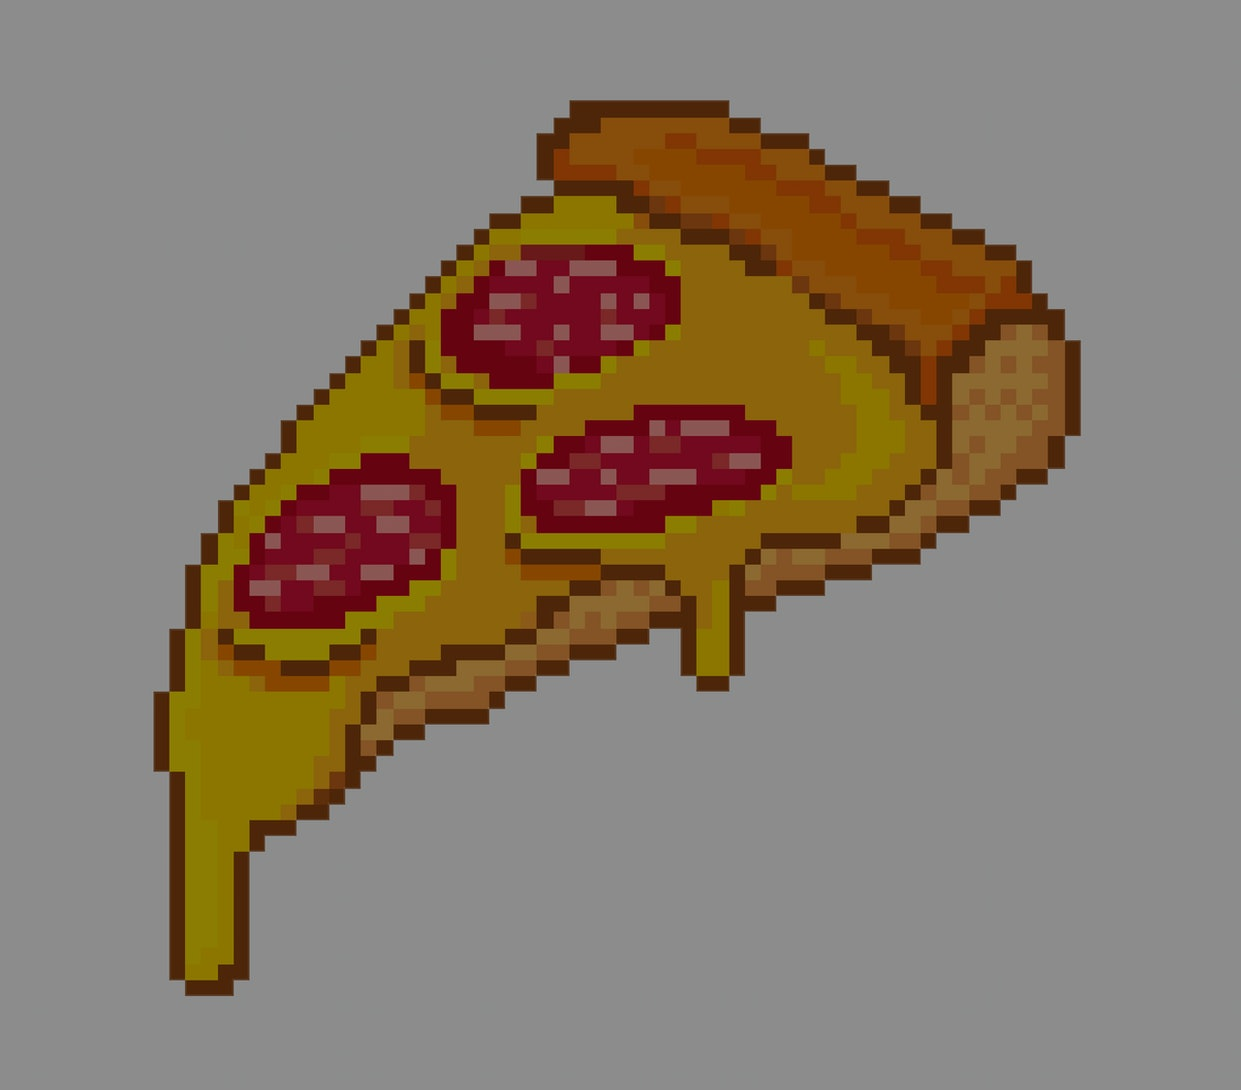 pixel art pizza with cheese and salami on a white background for video games